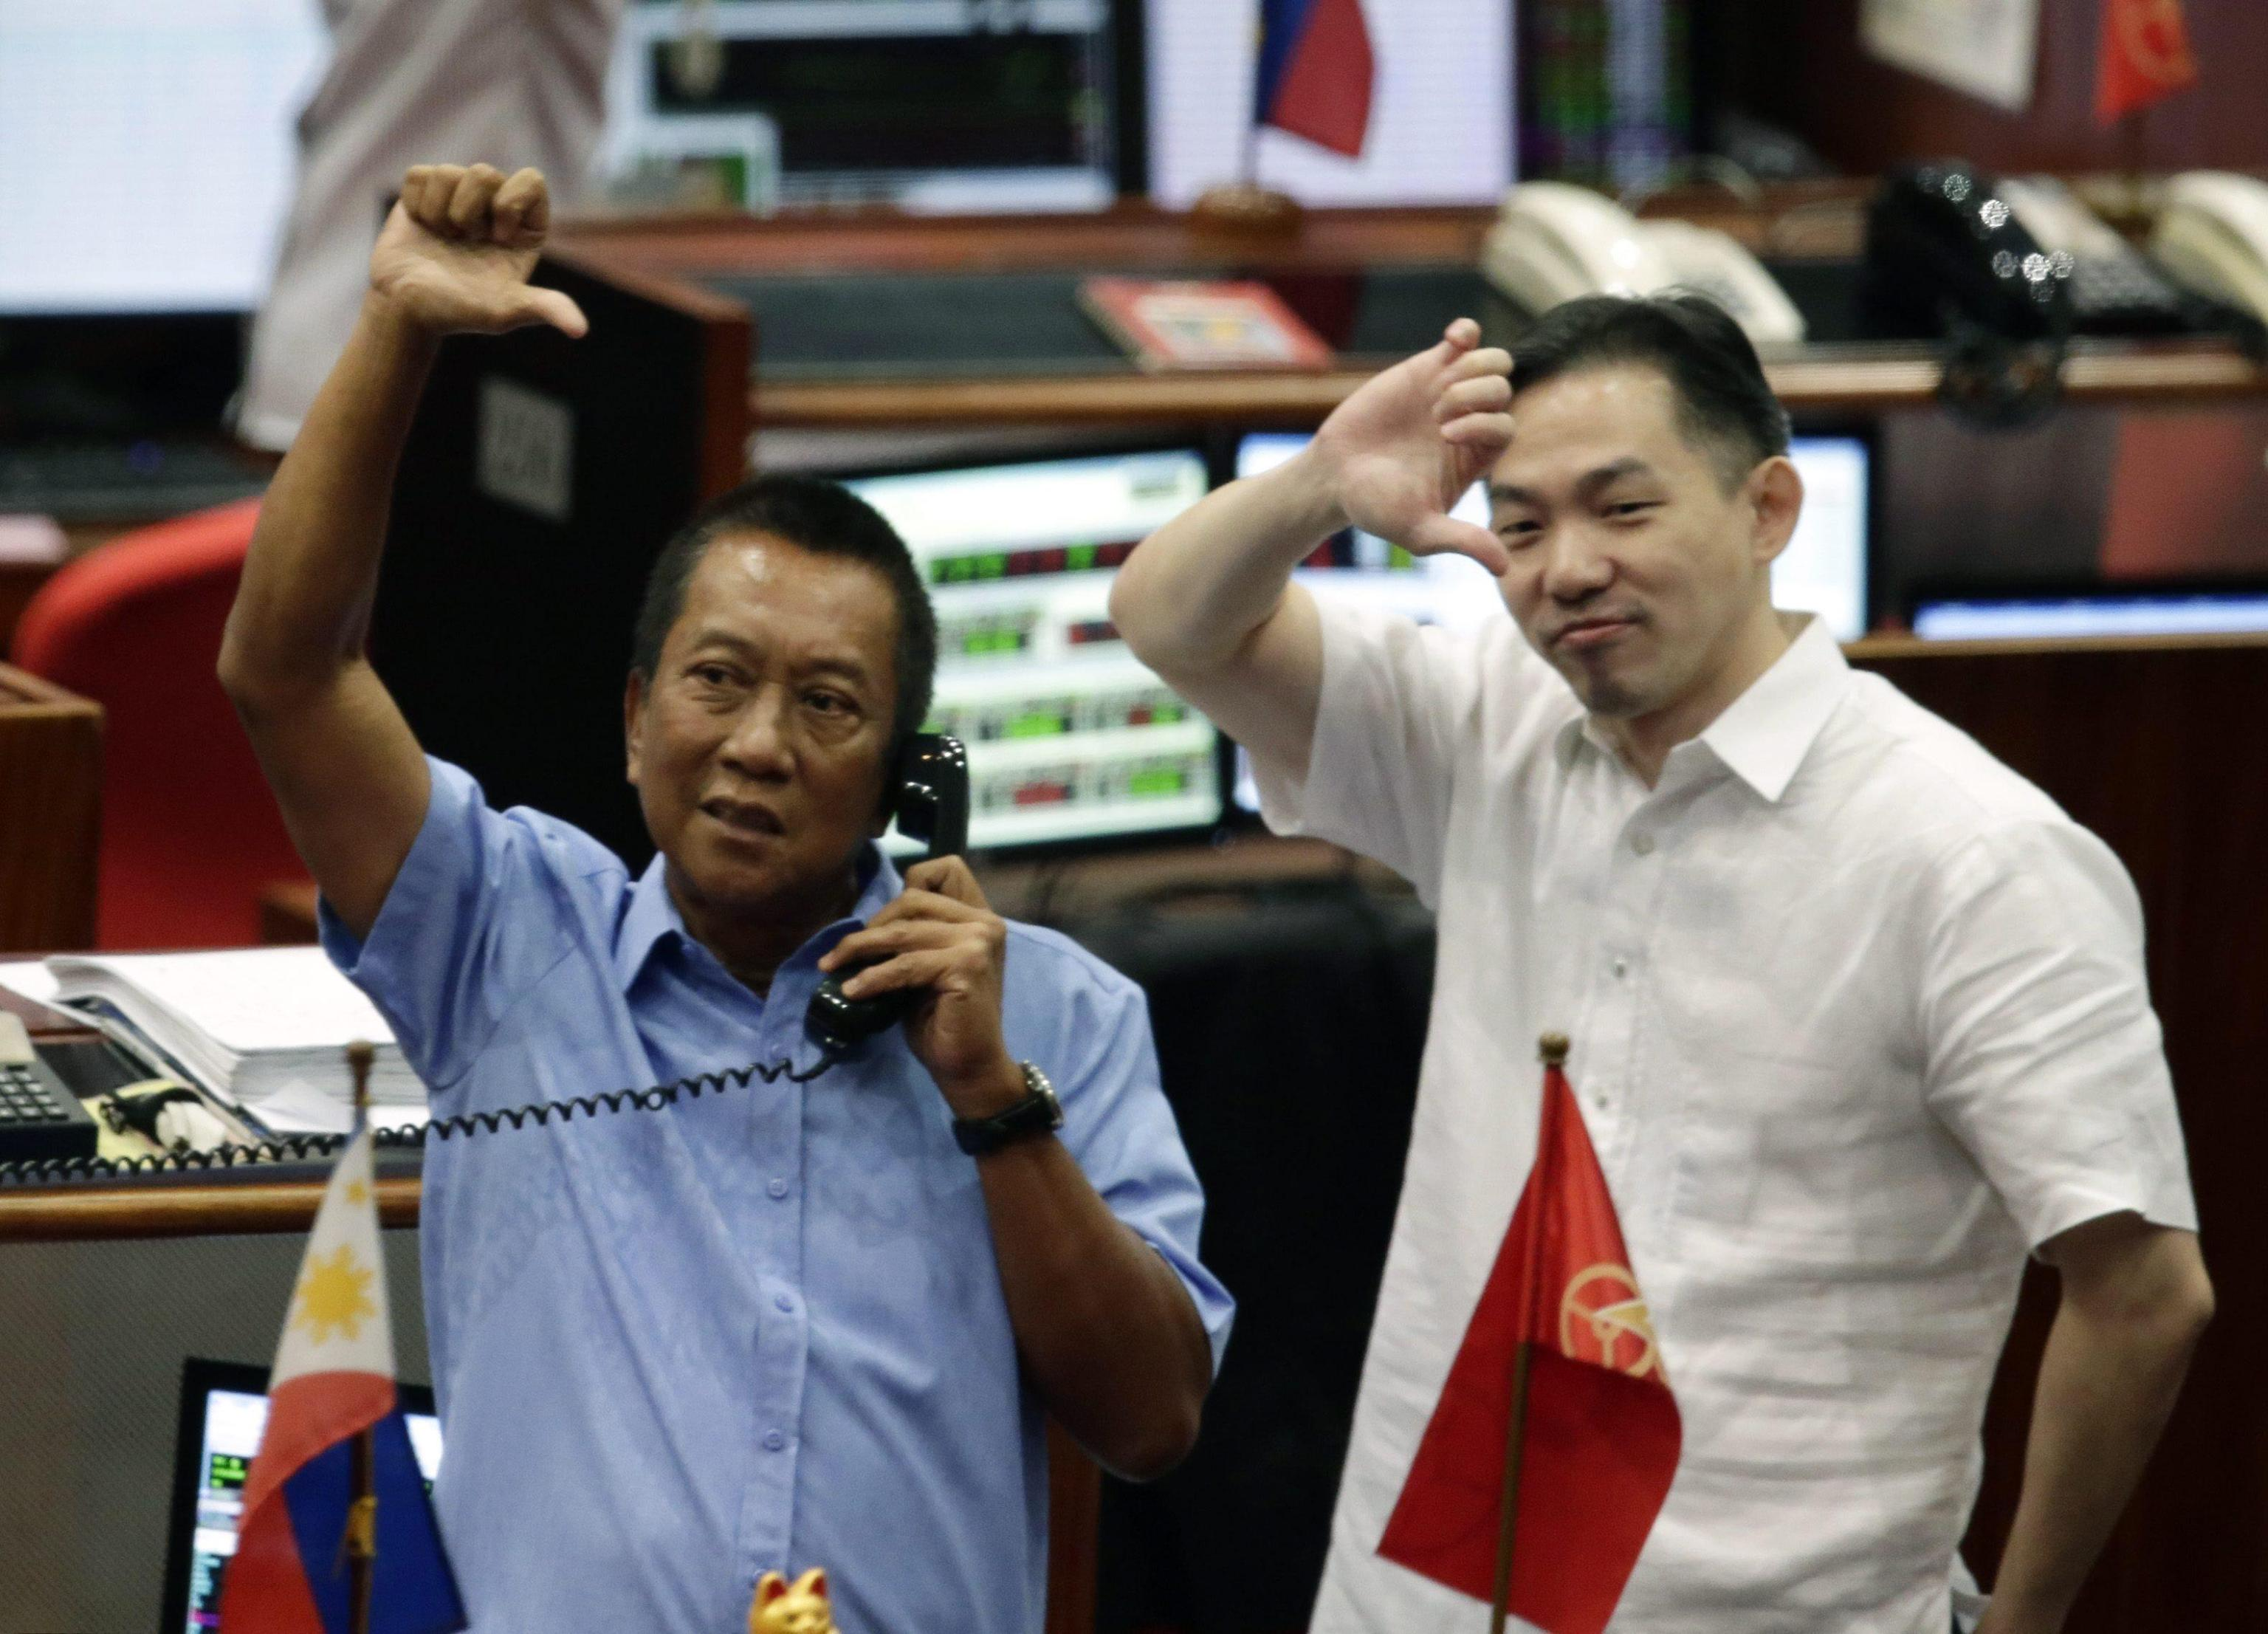 Philippines stocks plunged by 6.70 percent as investors sold off their shares amid concerns about China's economy